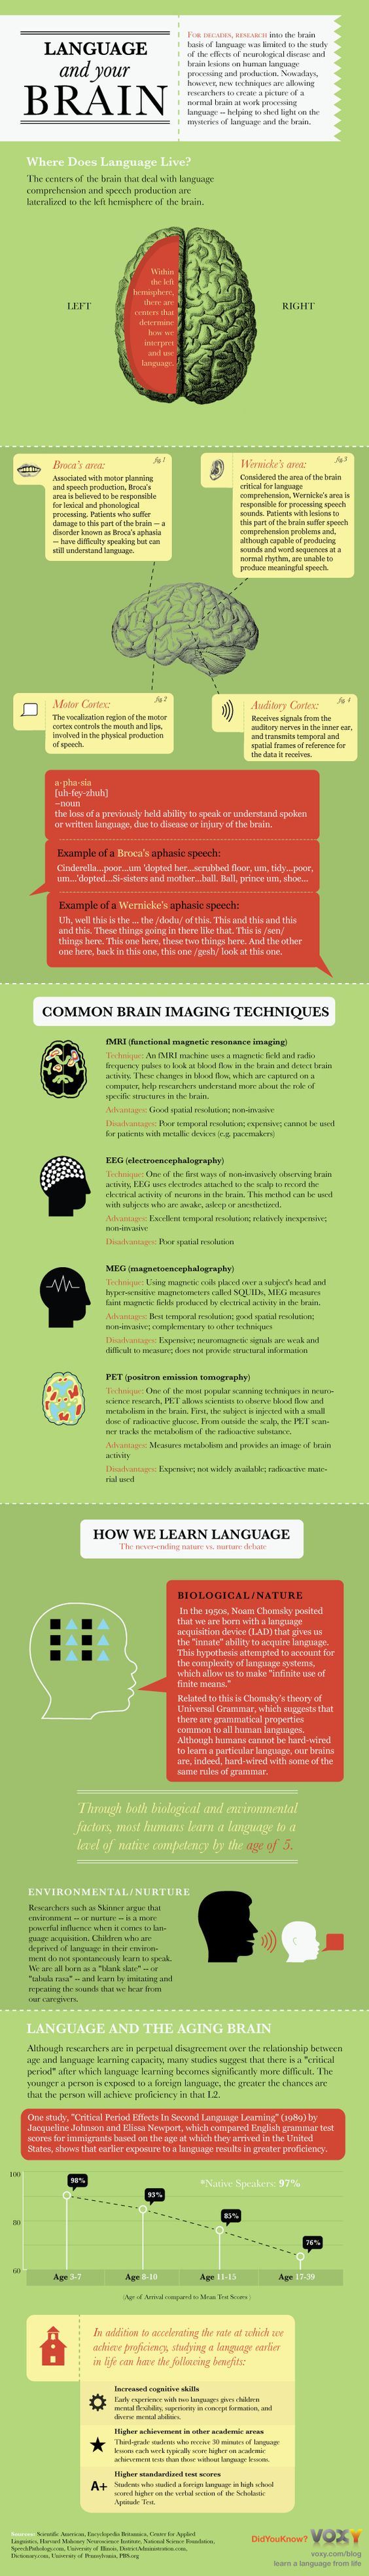 Language and Your Brain Infographic. Linguistics was one of the most interesting classes I have taken in college.